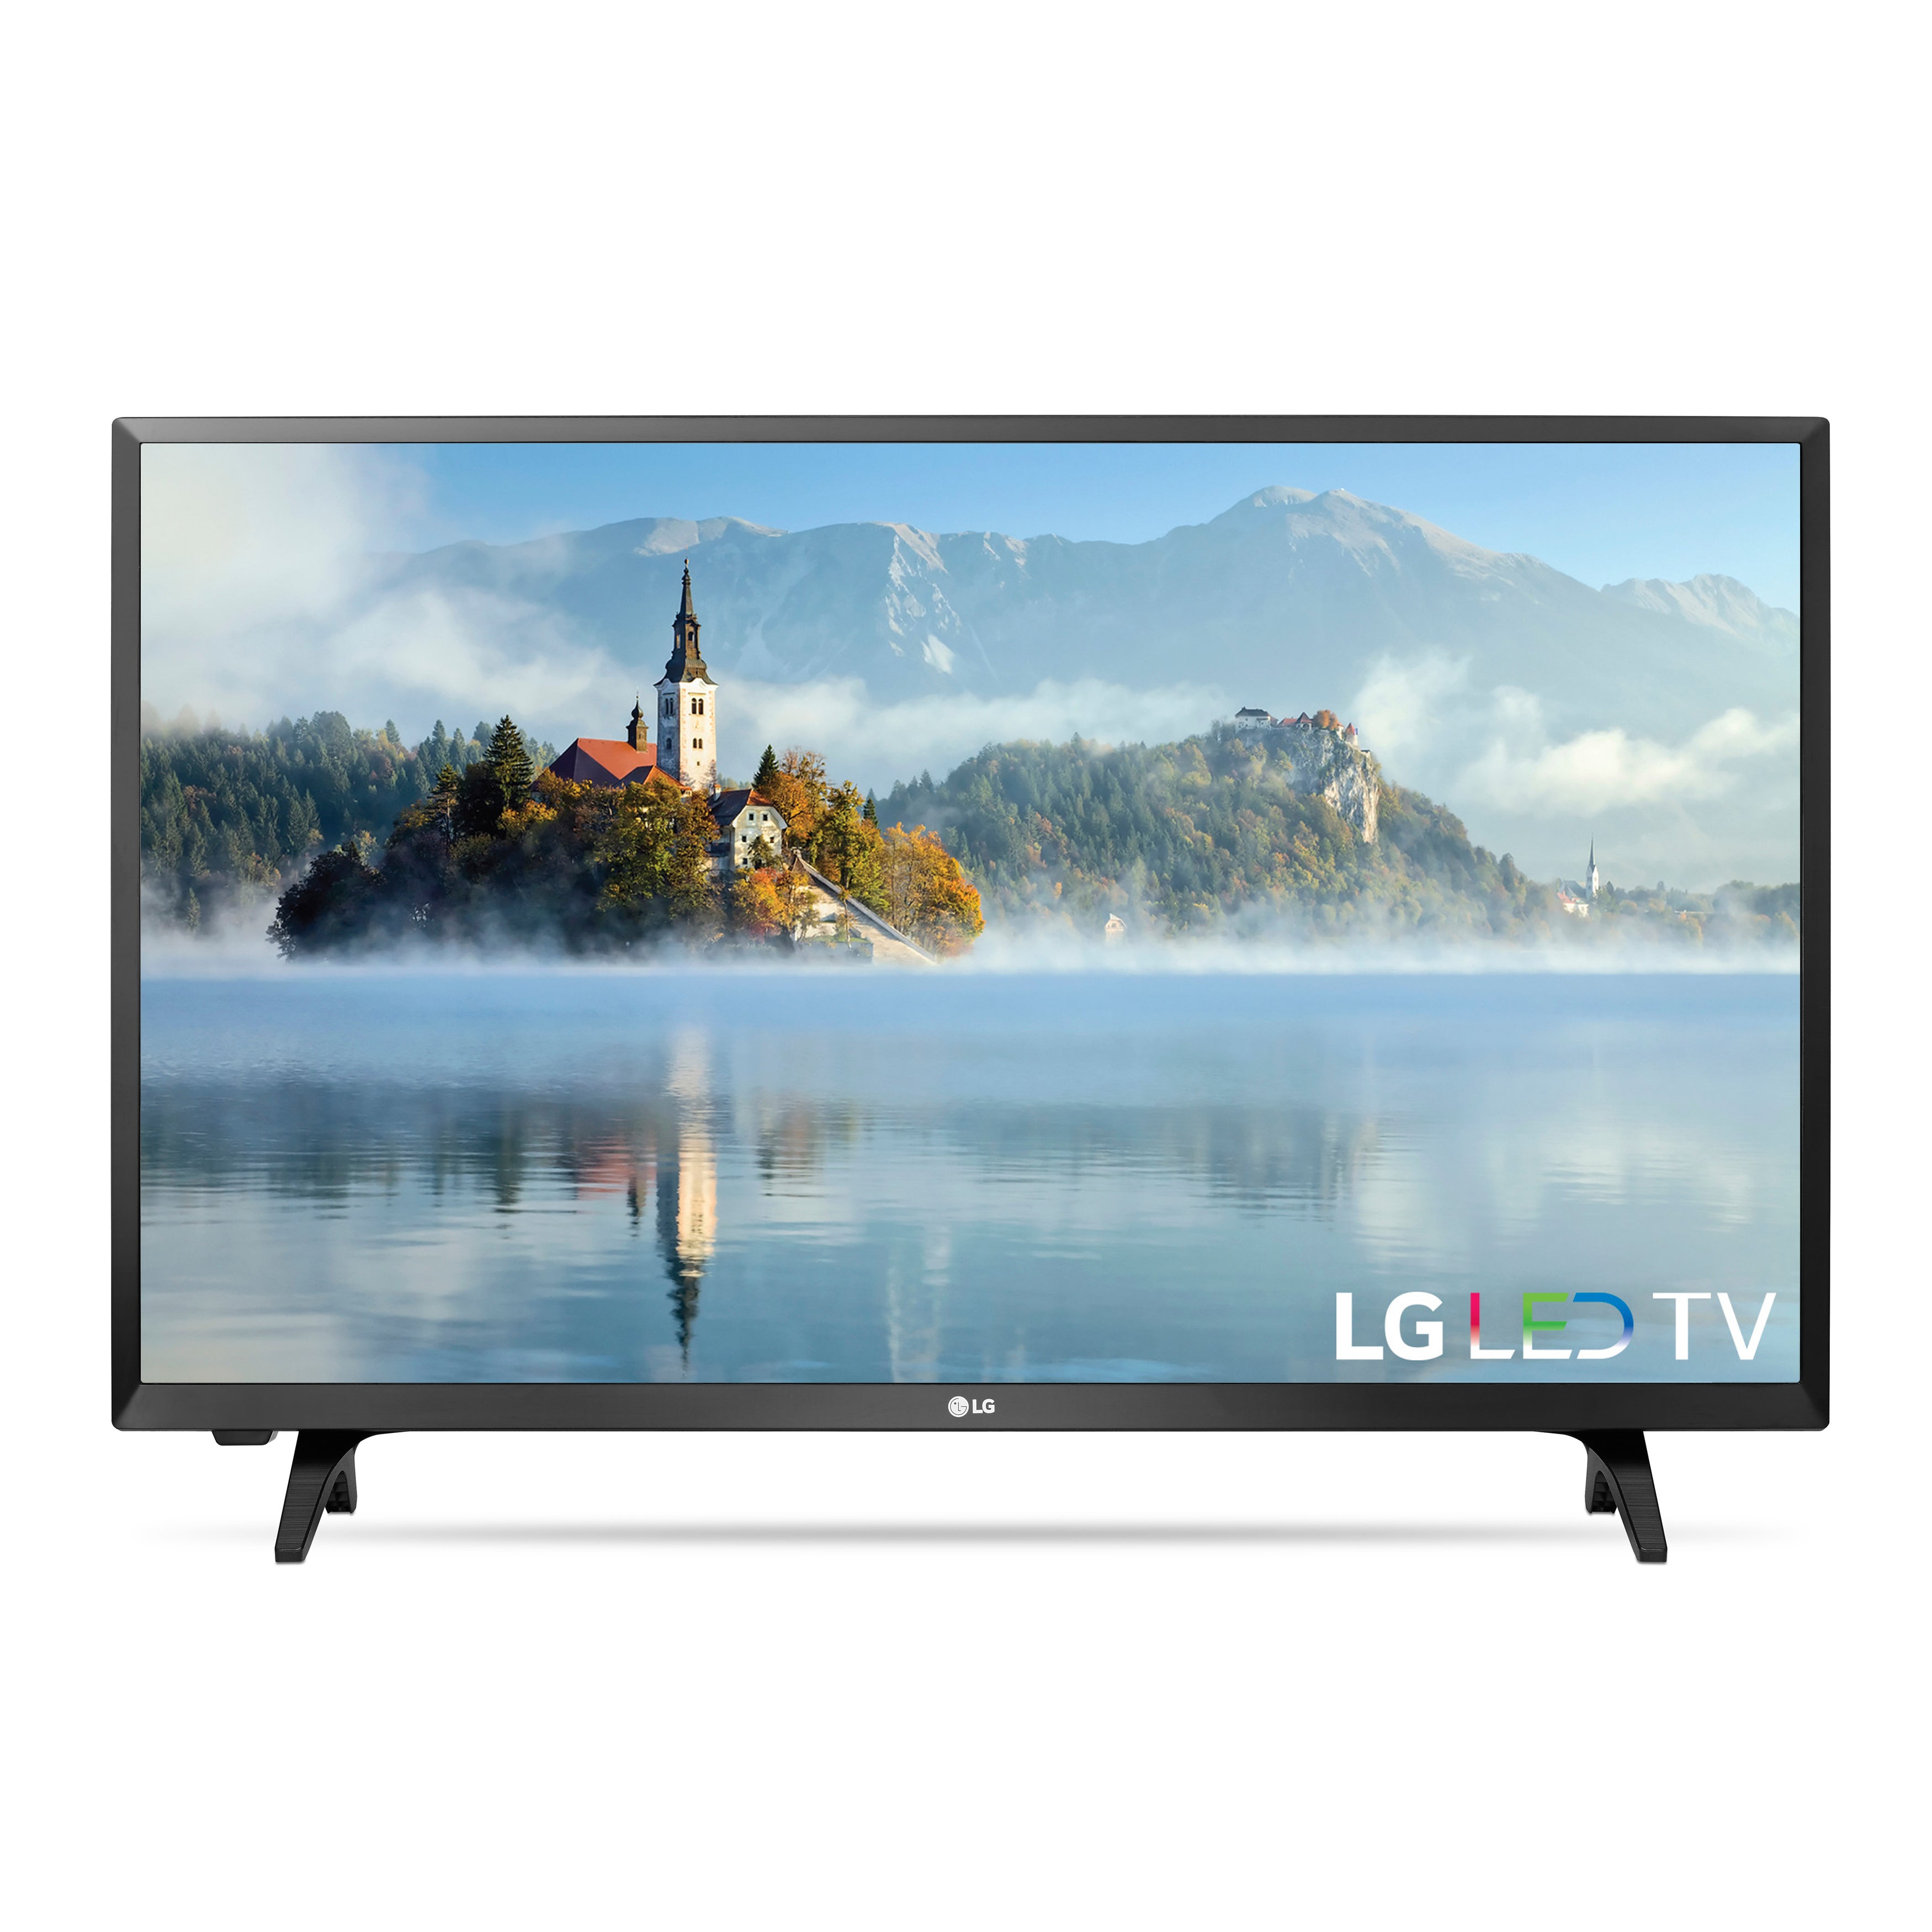 Lg 43 Inch Class 1080p Led 43lj5000 Television Free Shipping  # Modele De Table Television